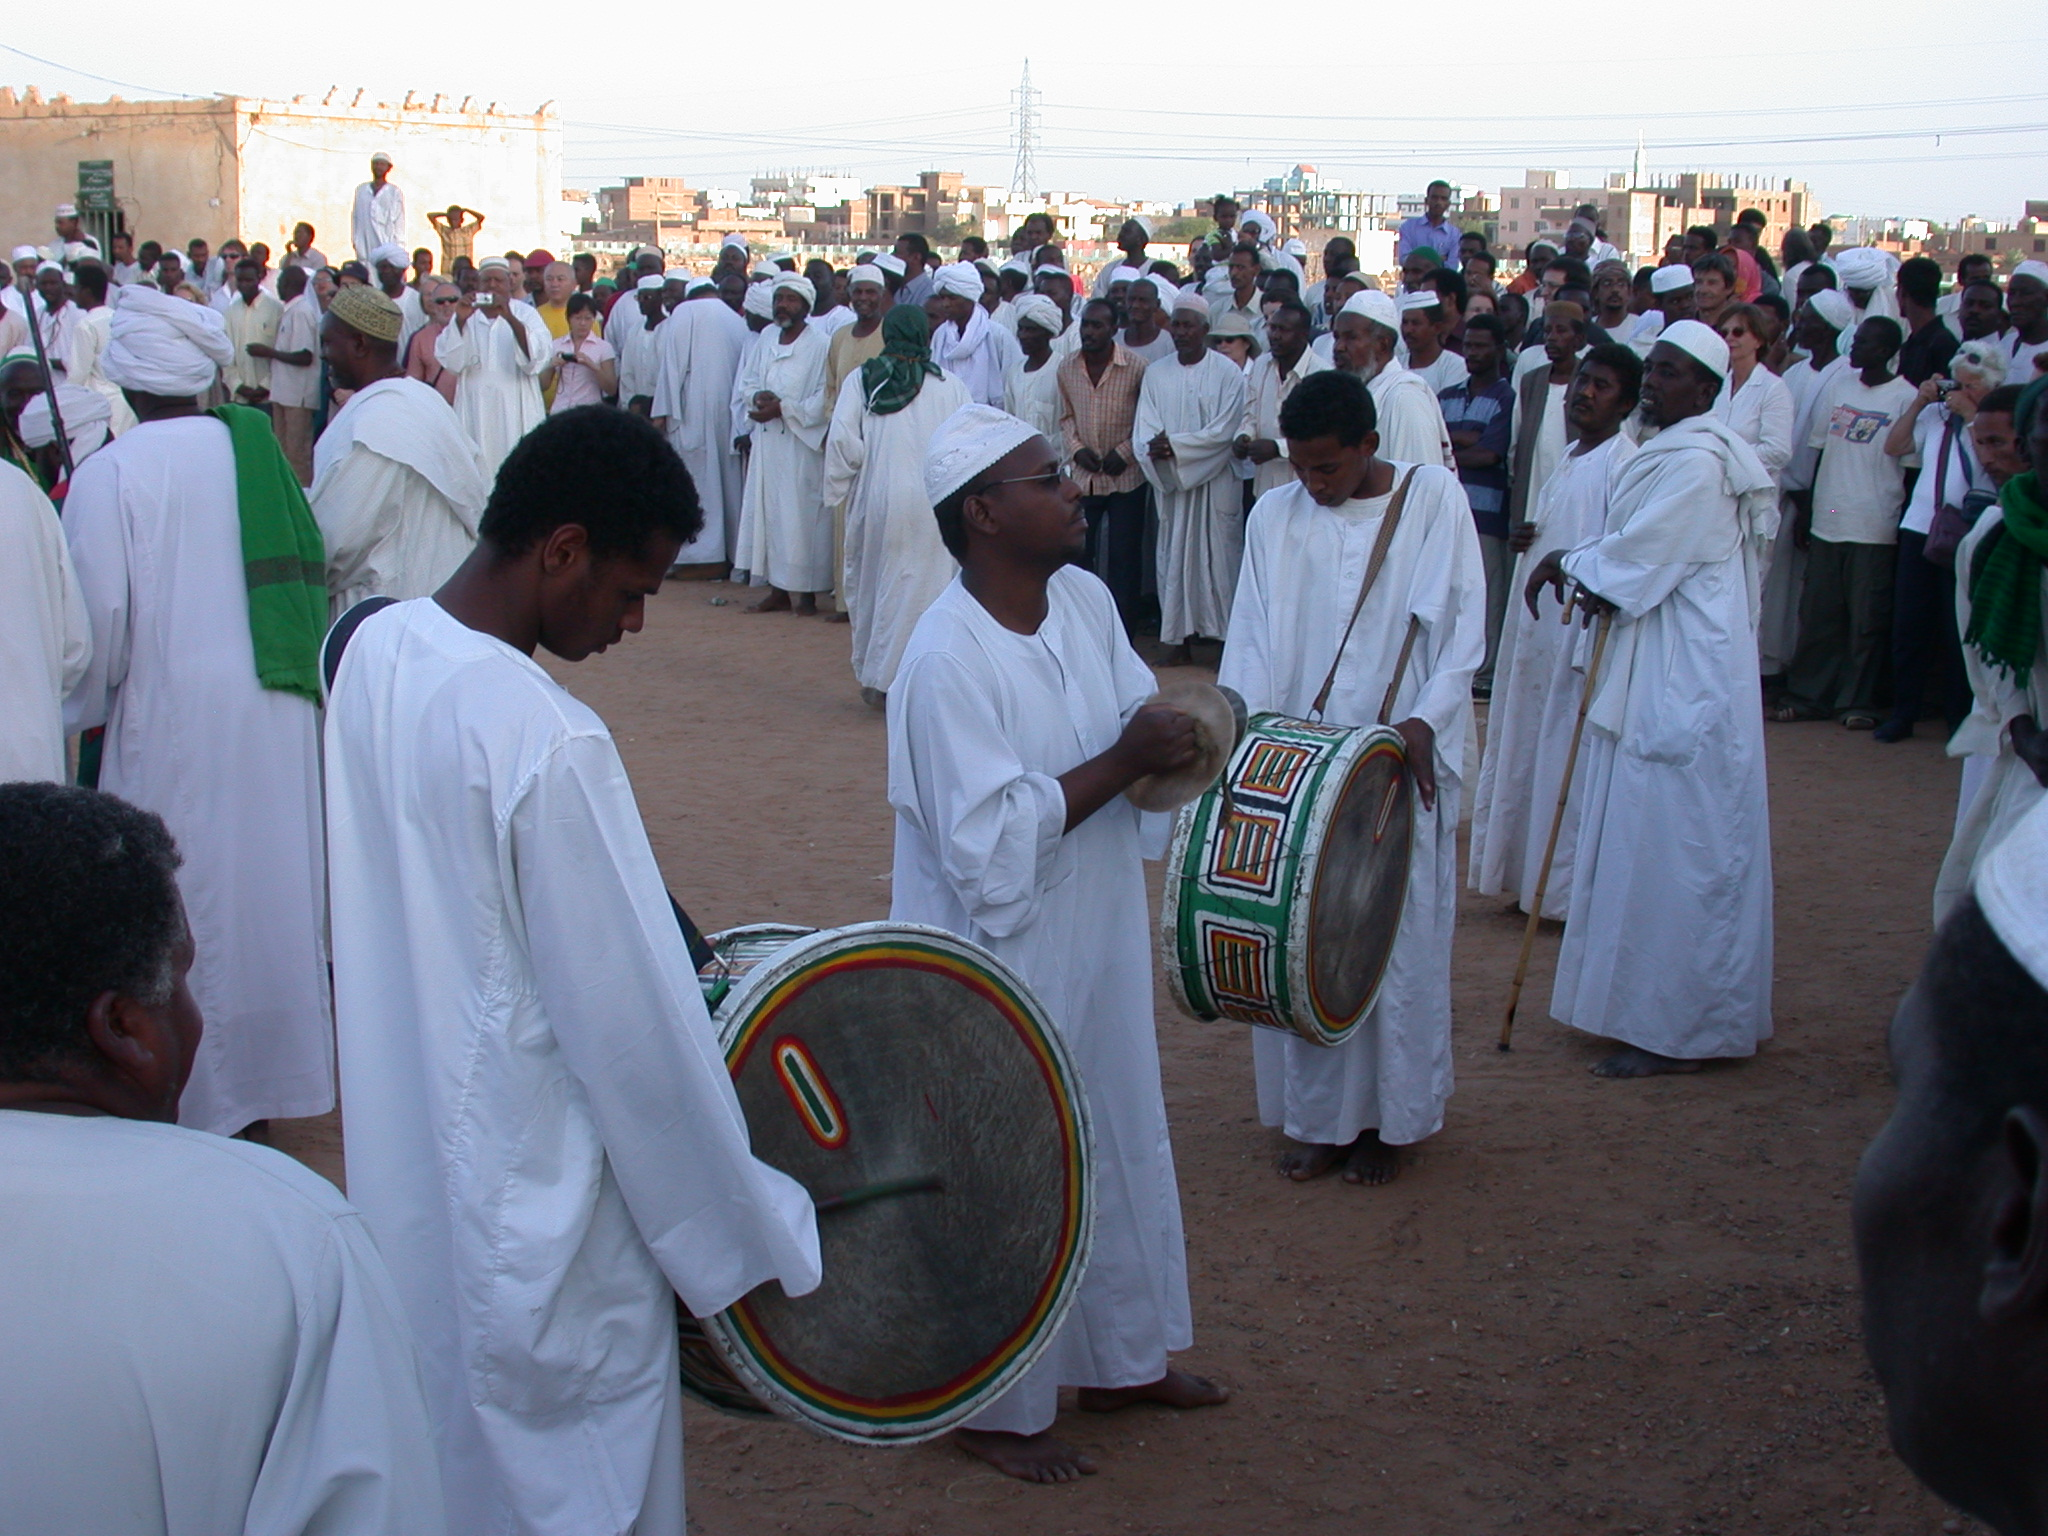 Ritual Drumming at Sufi Dancing Site, Omdurman, Sudan